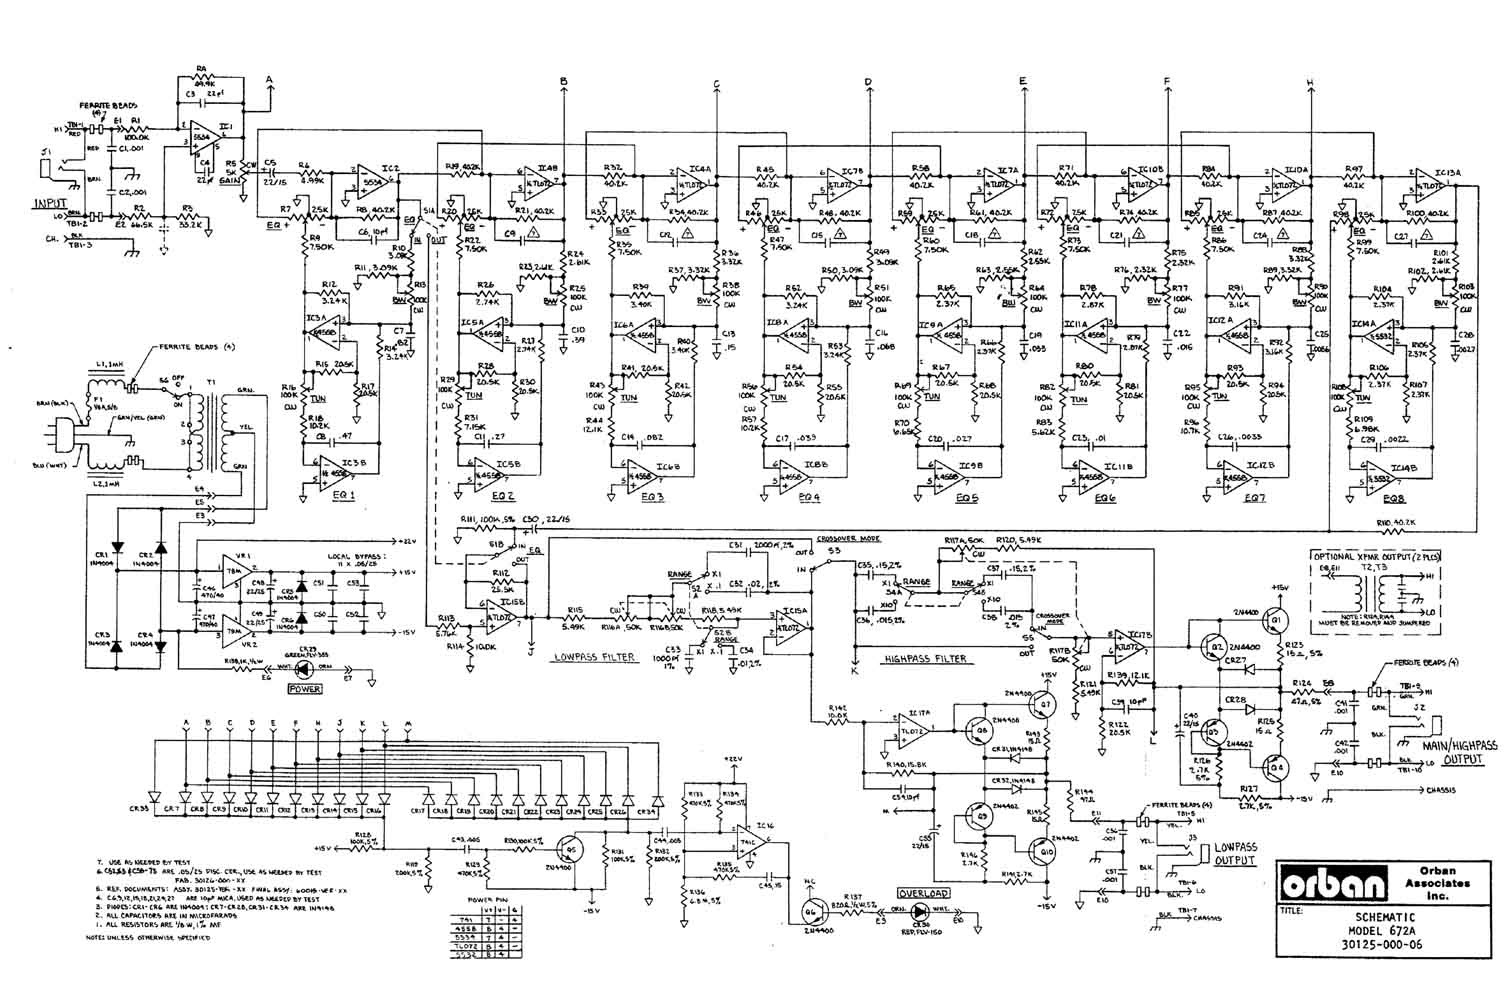 dbx crossover wiring diagram image 4